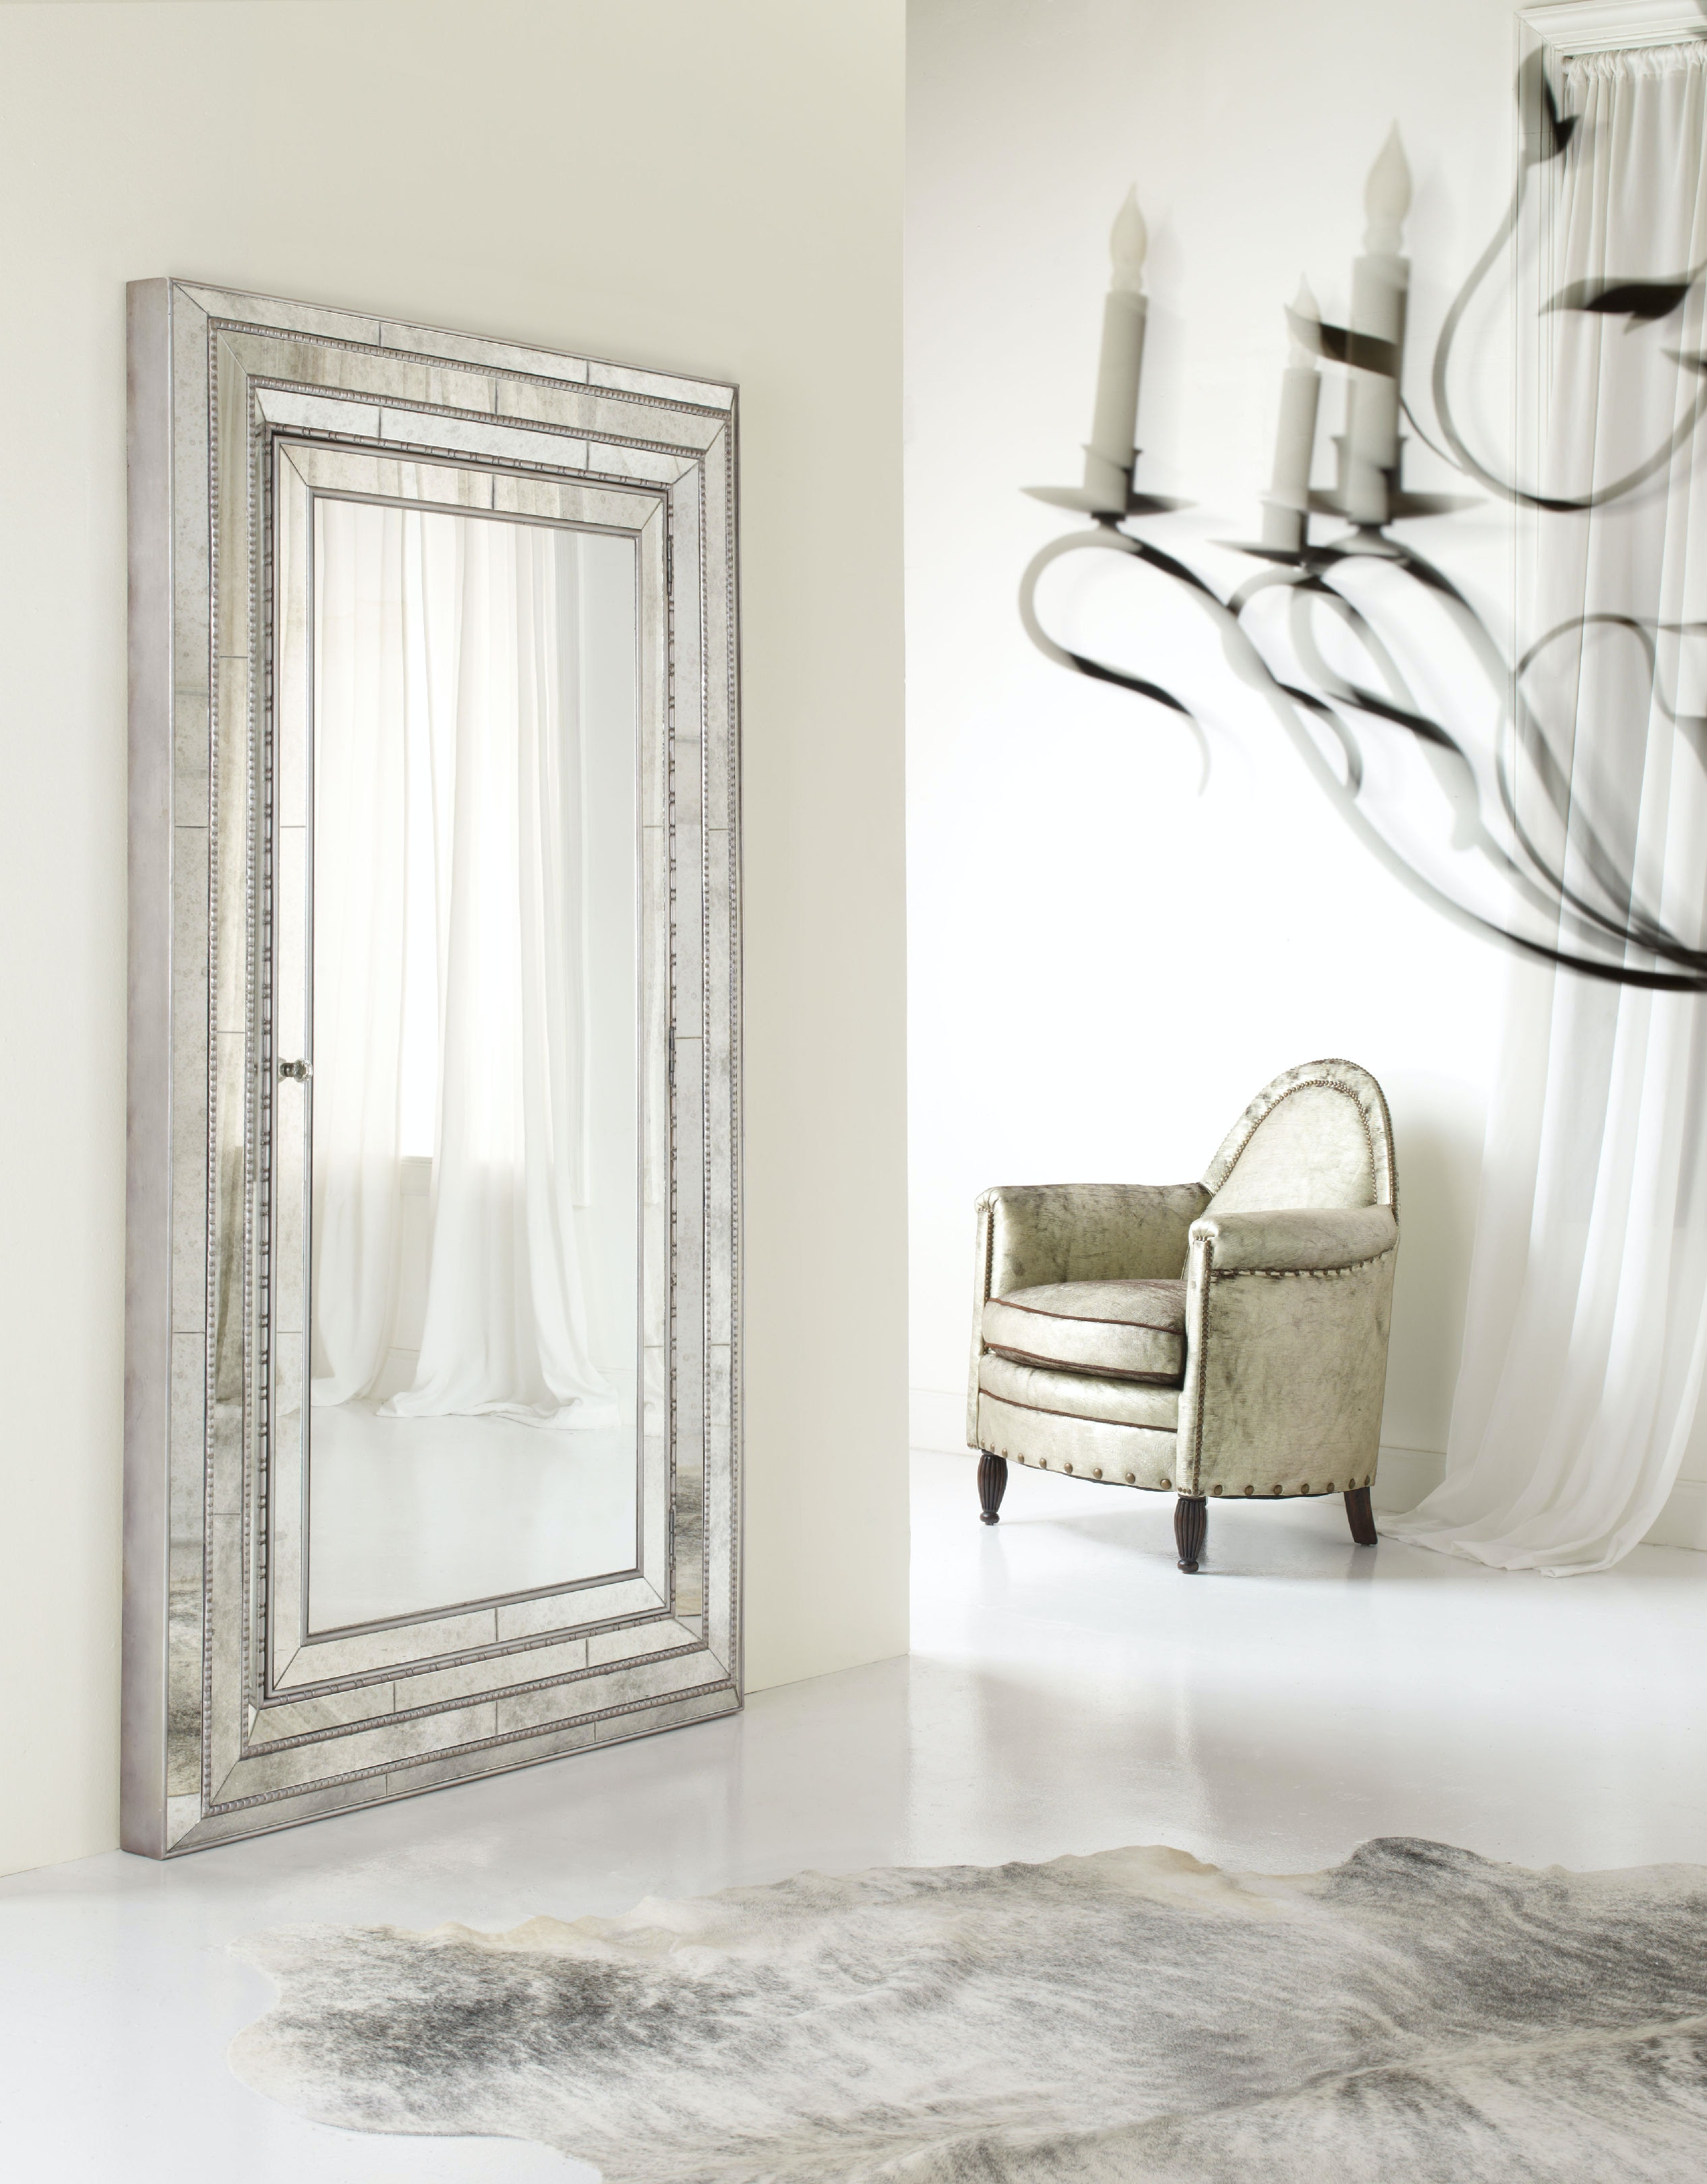 Captivating Hooker Furniture Accents Melange Glamour Floor Mirror W/Jewelry Armoire  Storage